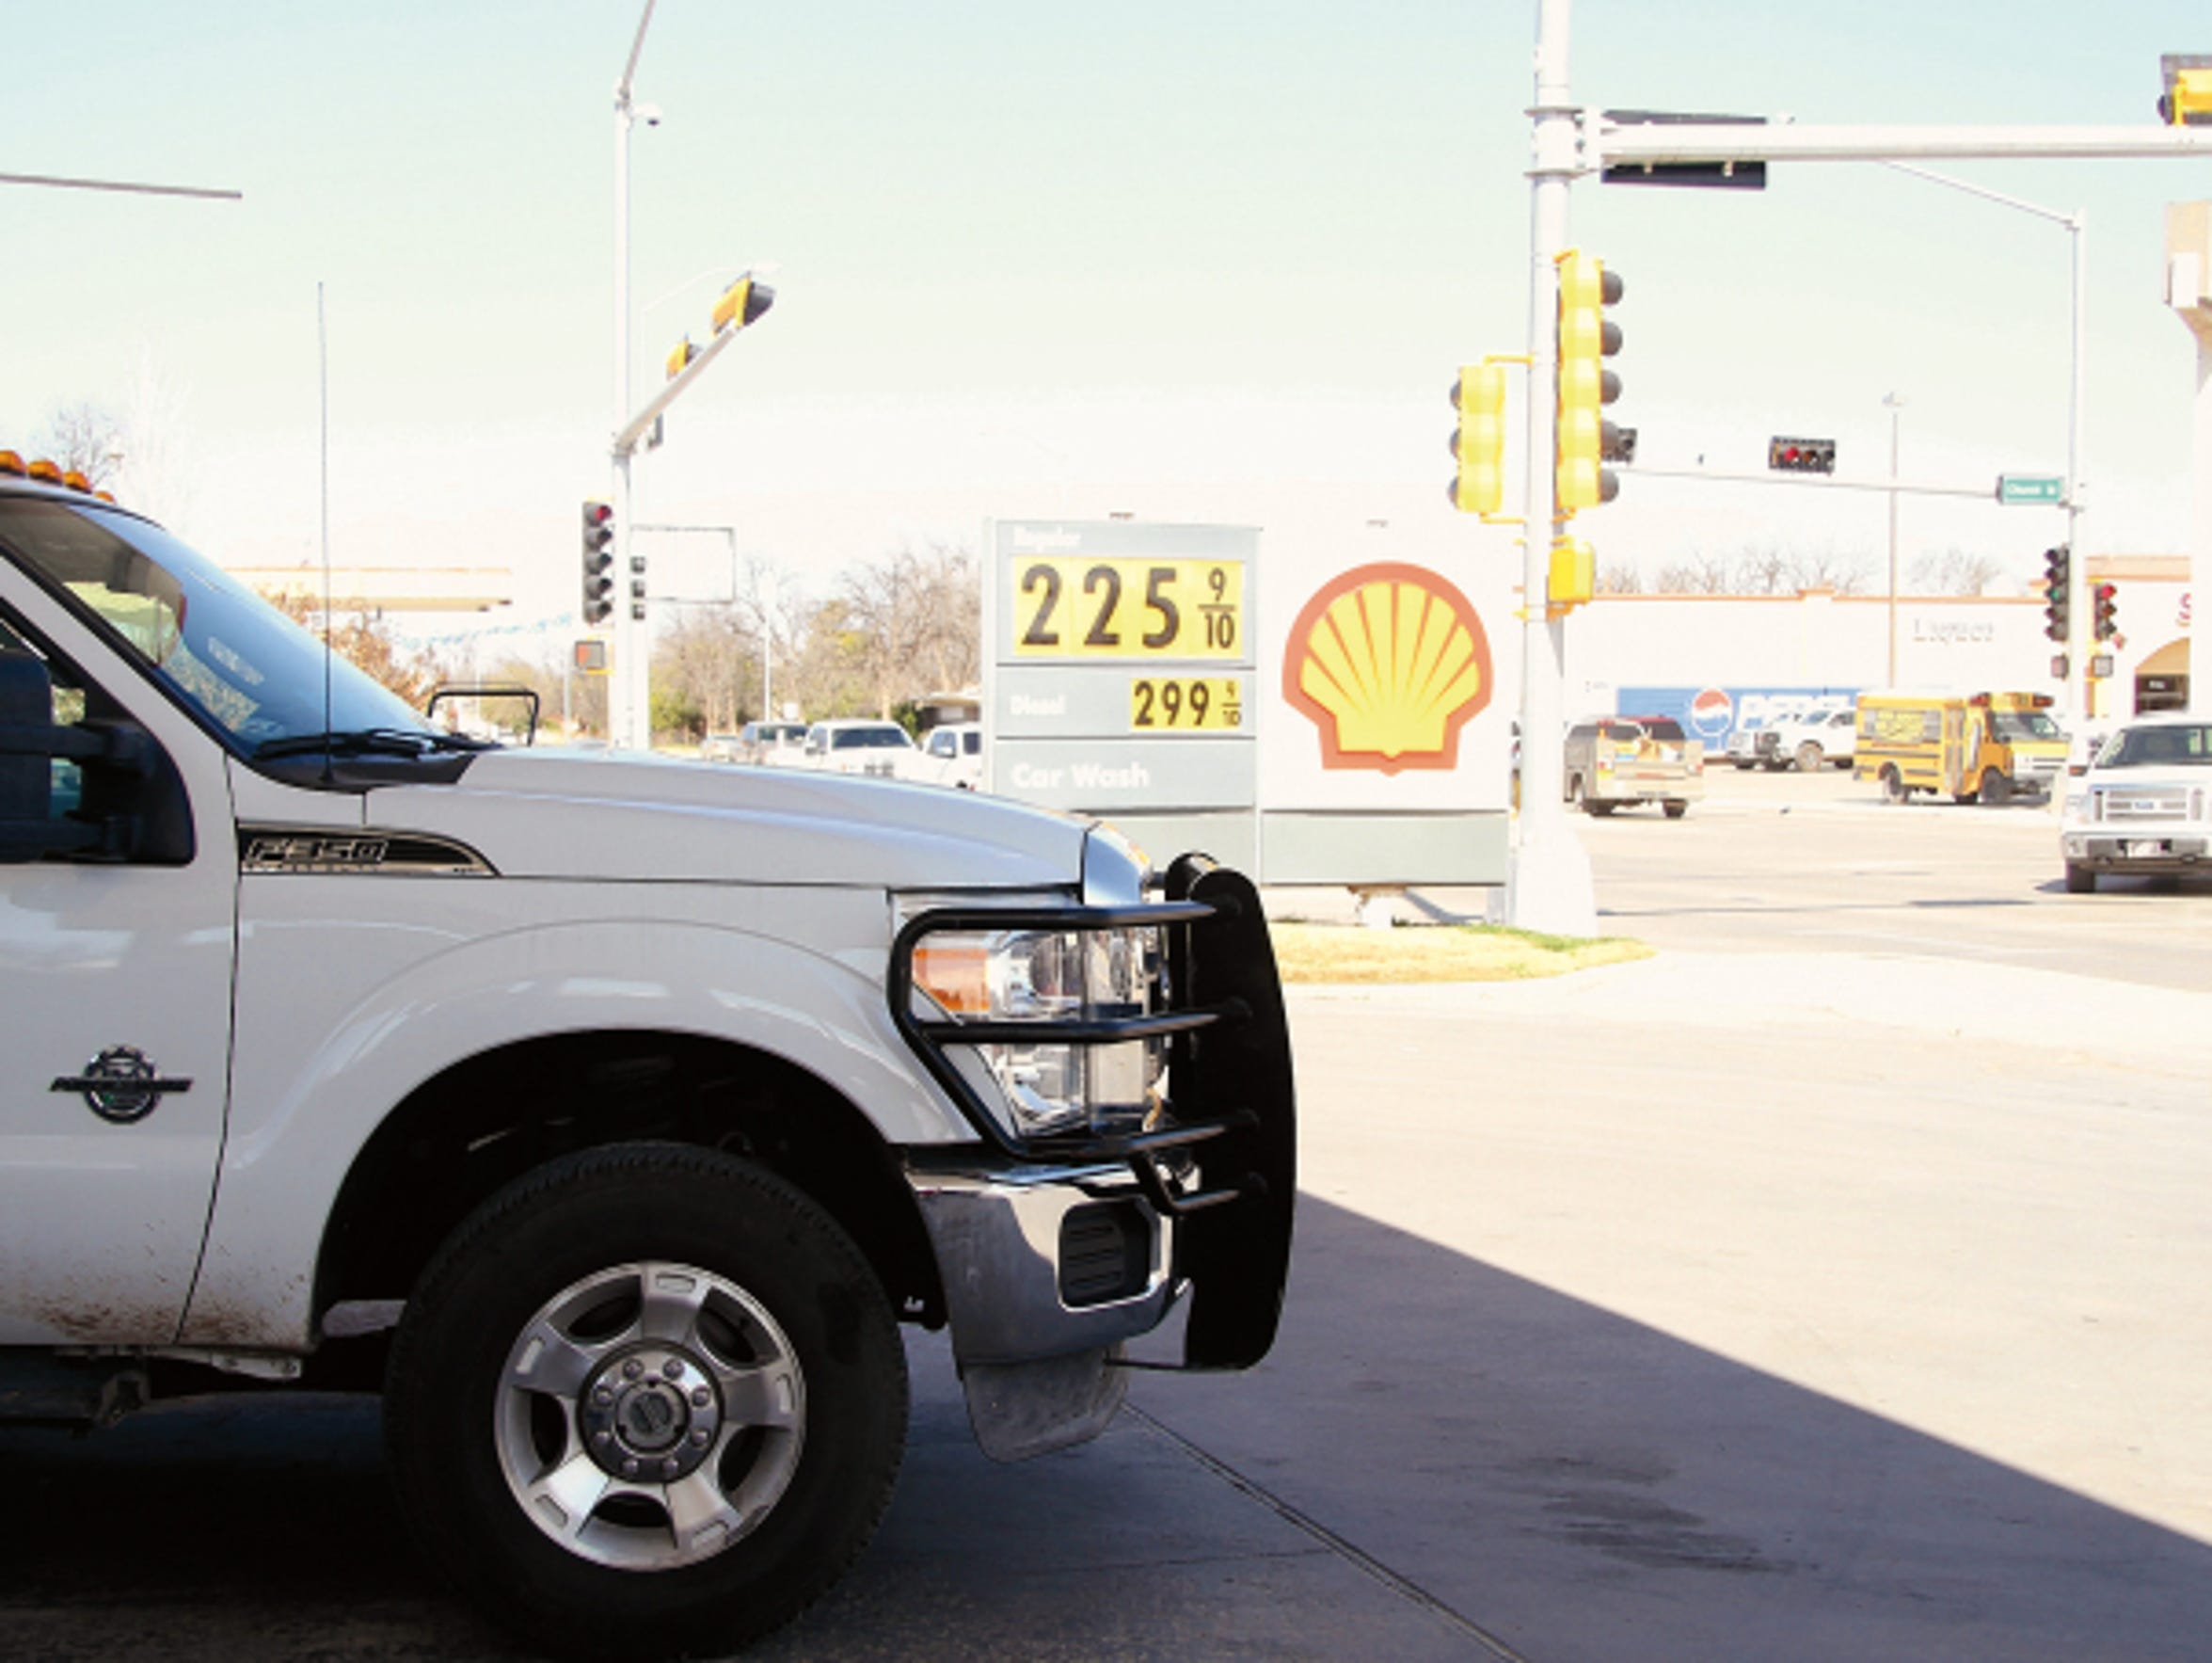 Oil and gas prices saw a steady increase throughout